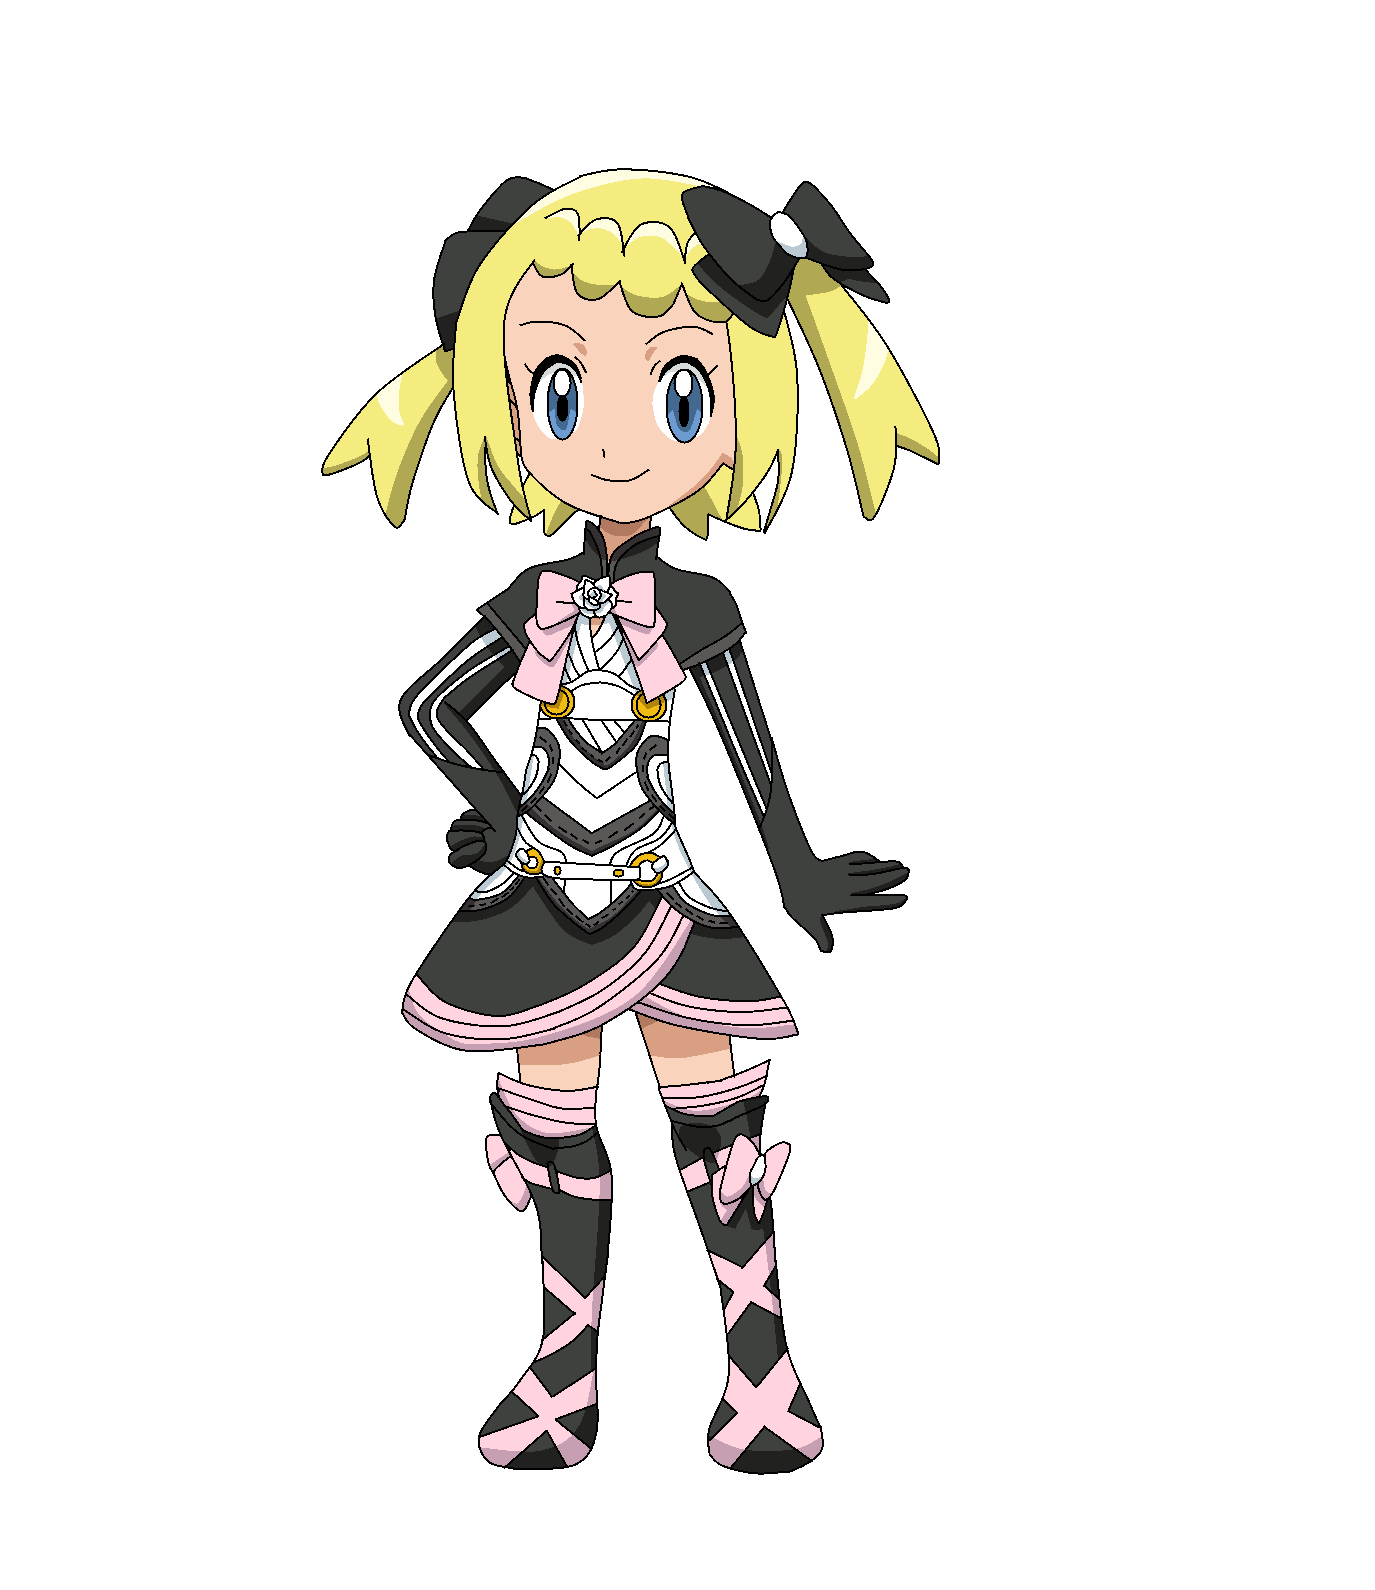 X And Y Anime Characters : Pokemon and y bonnie images